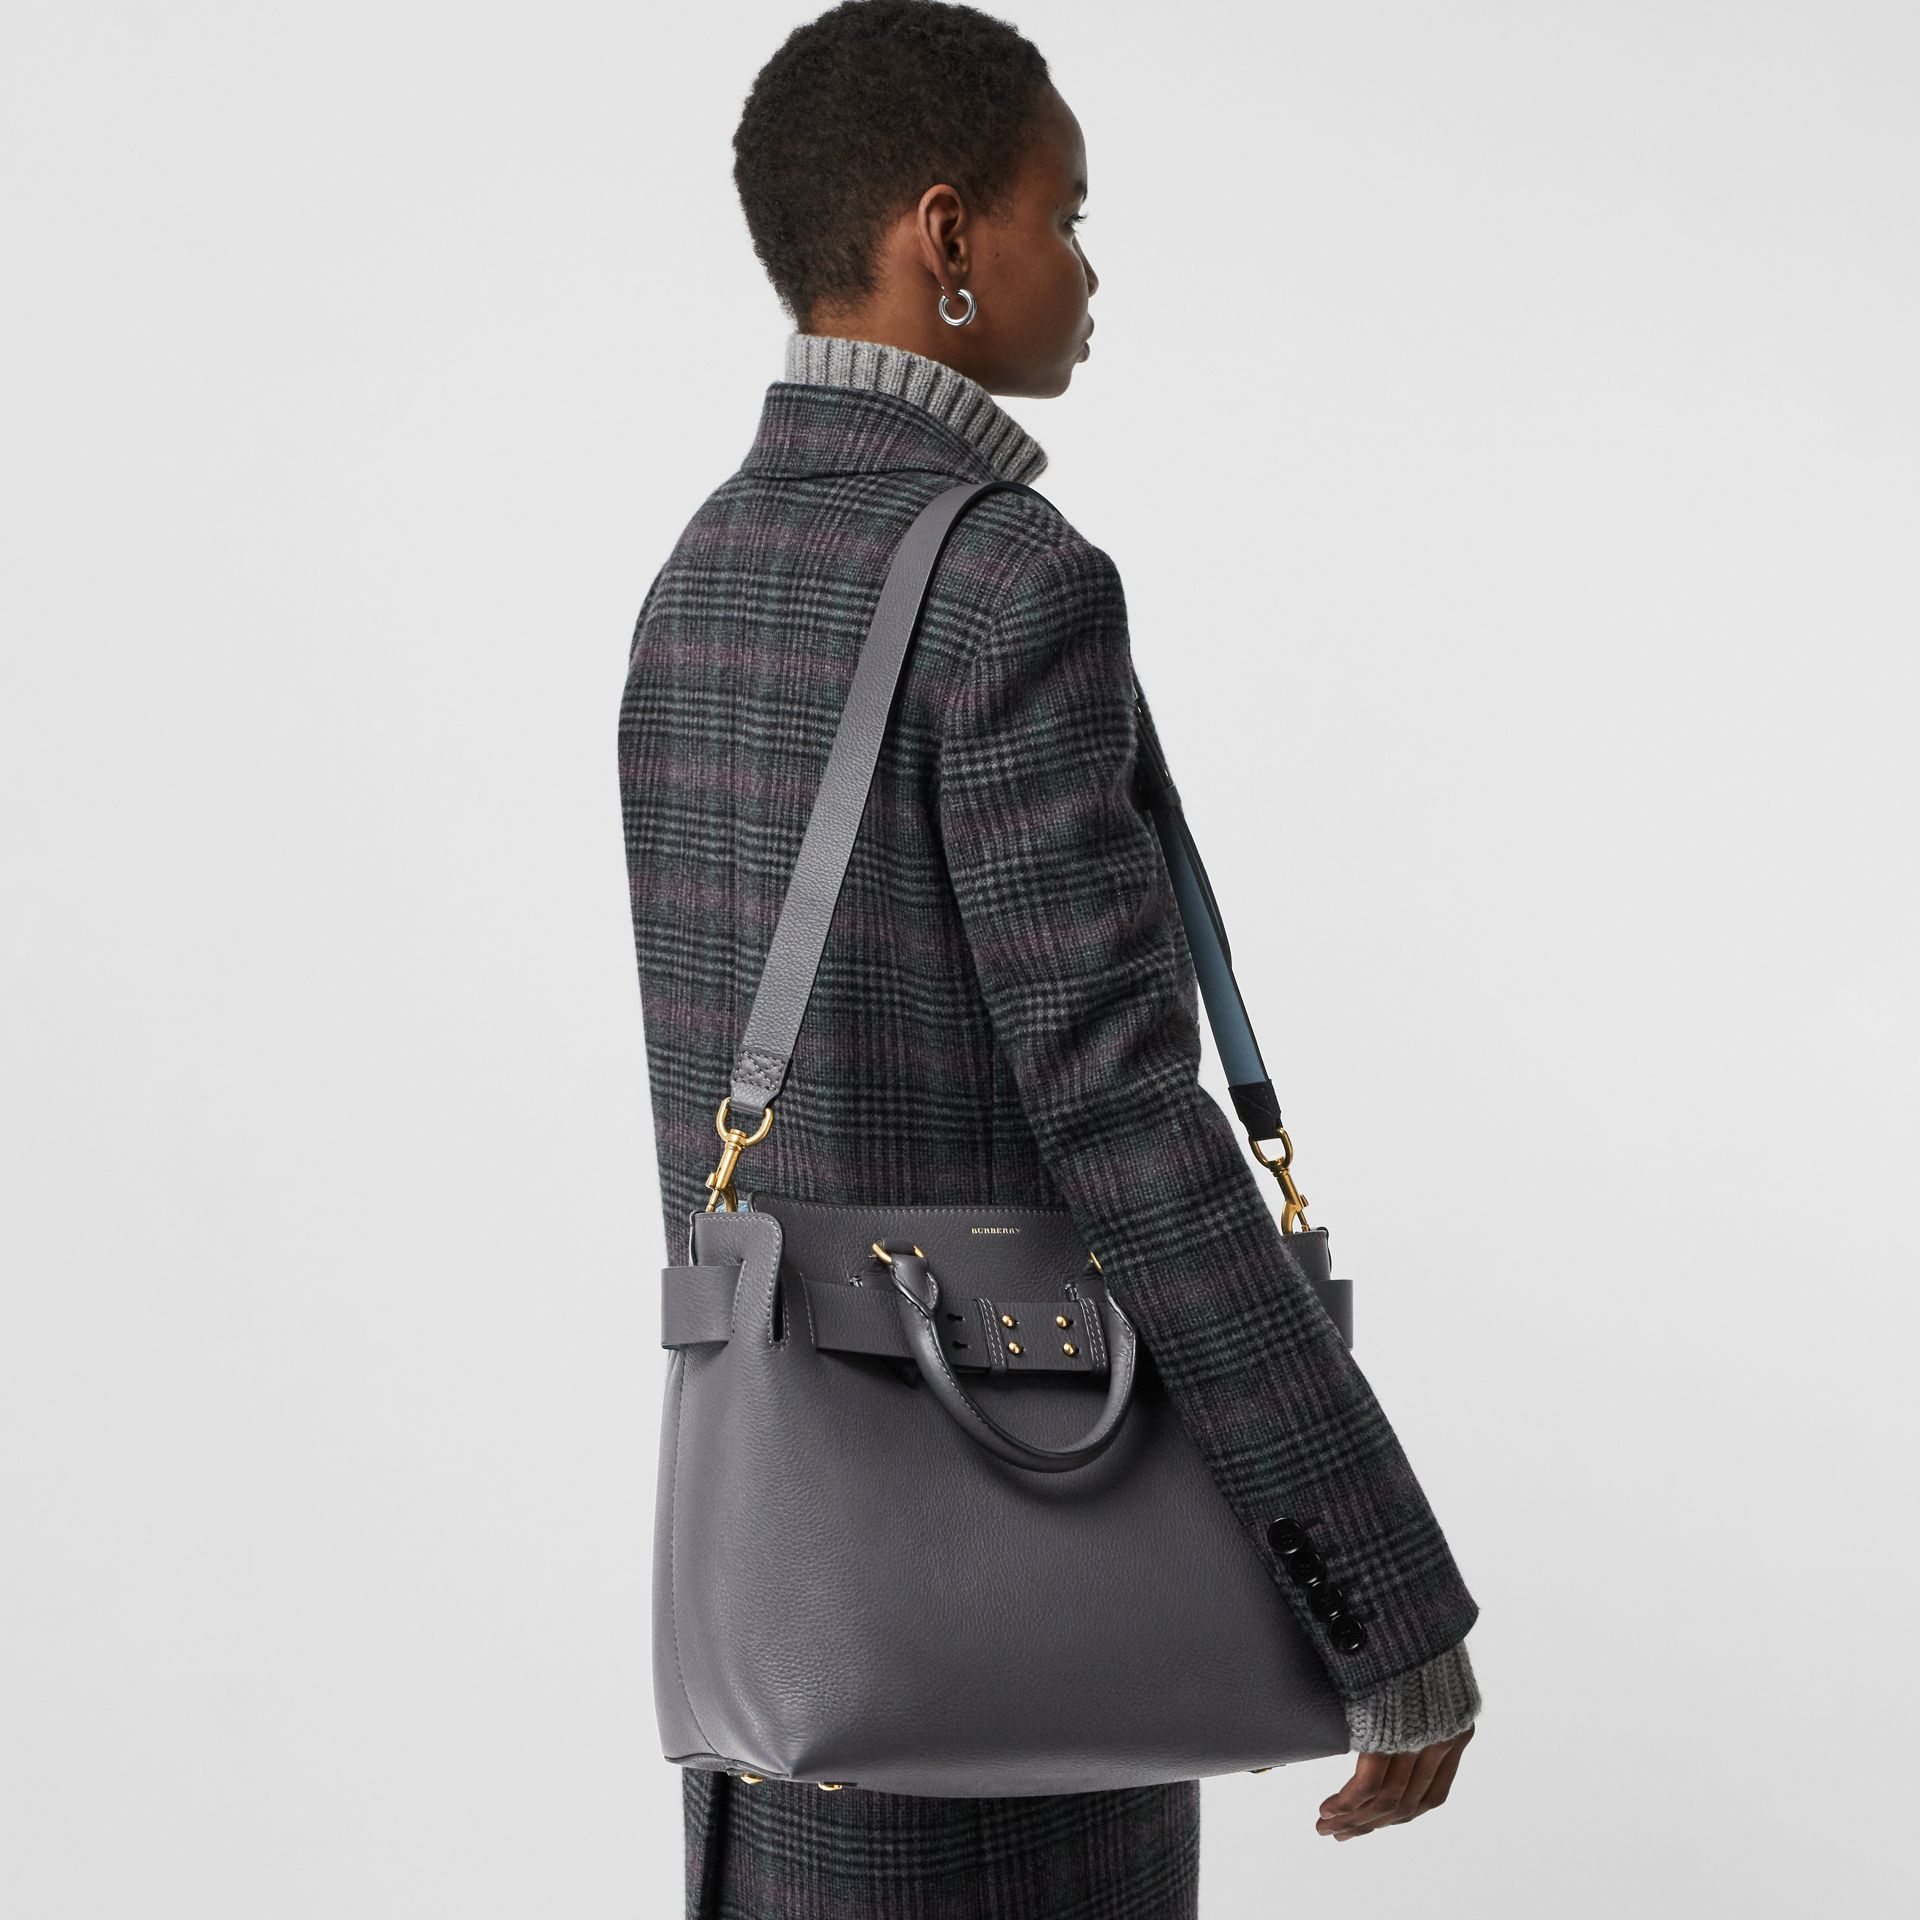 Sac The Belt moyen en cuir (Gris Anthracite) - Femme | Burberry - photo de la galerie 3